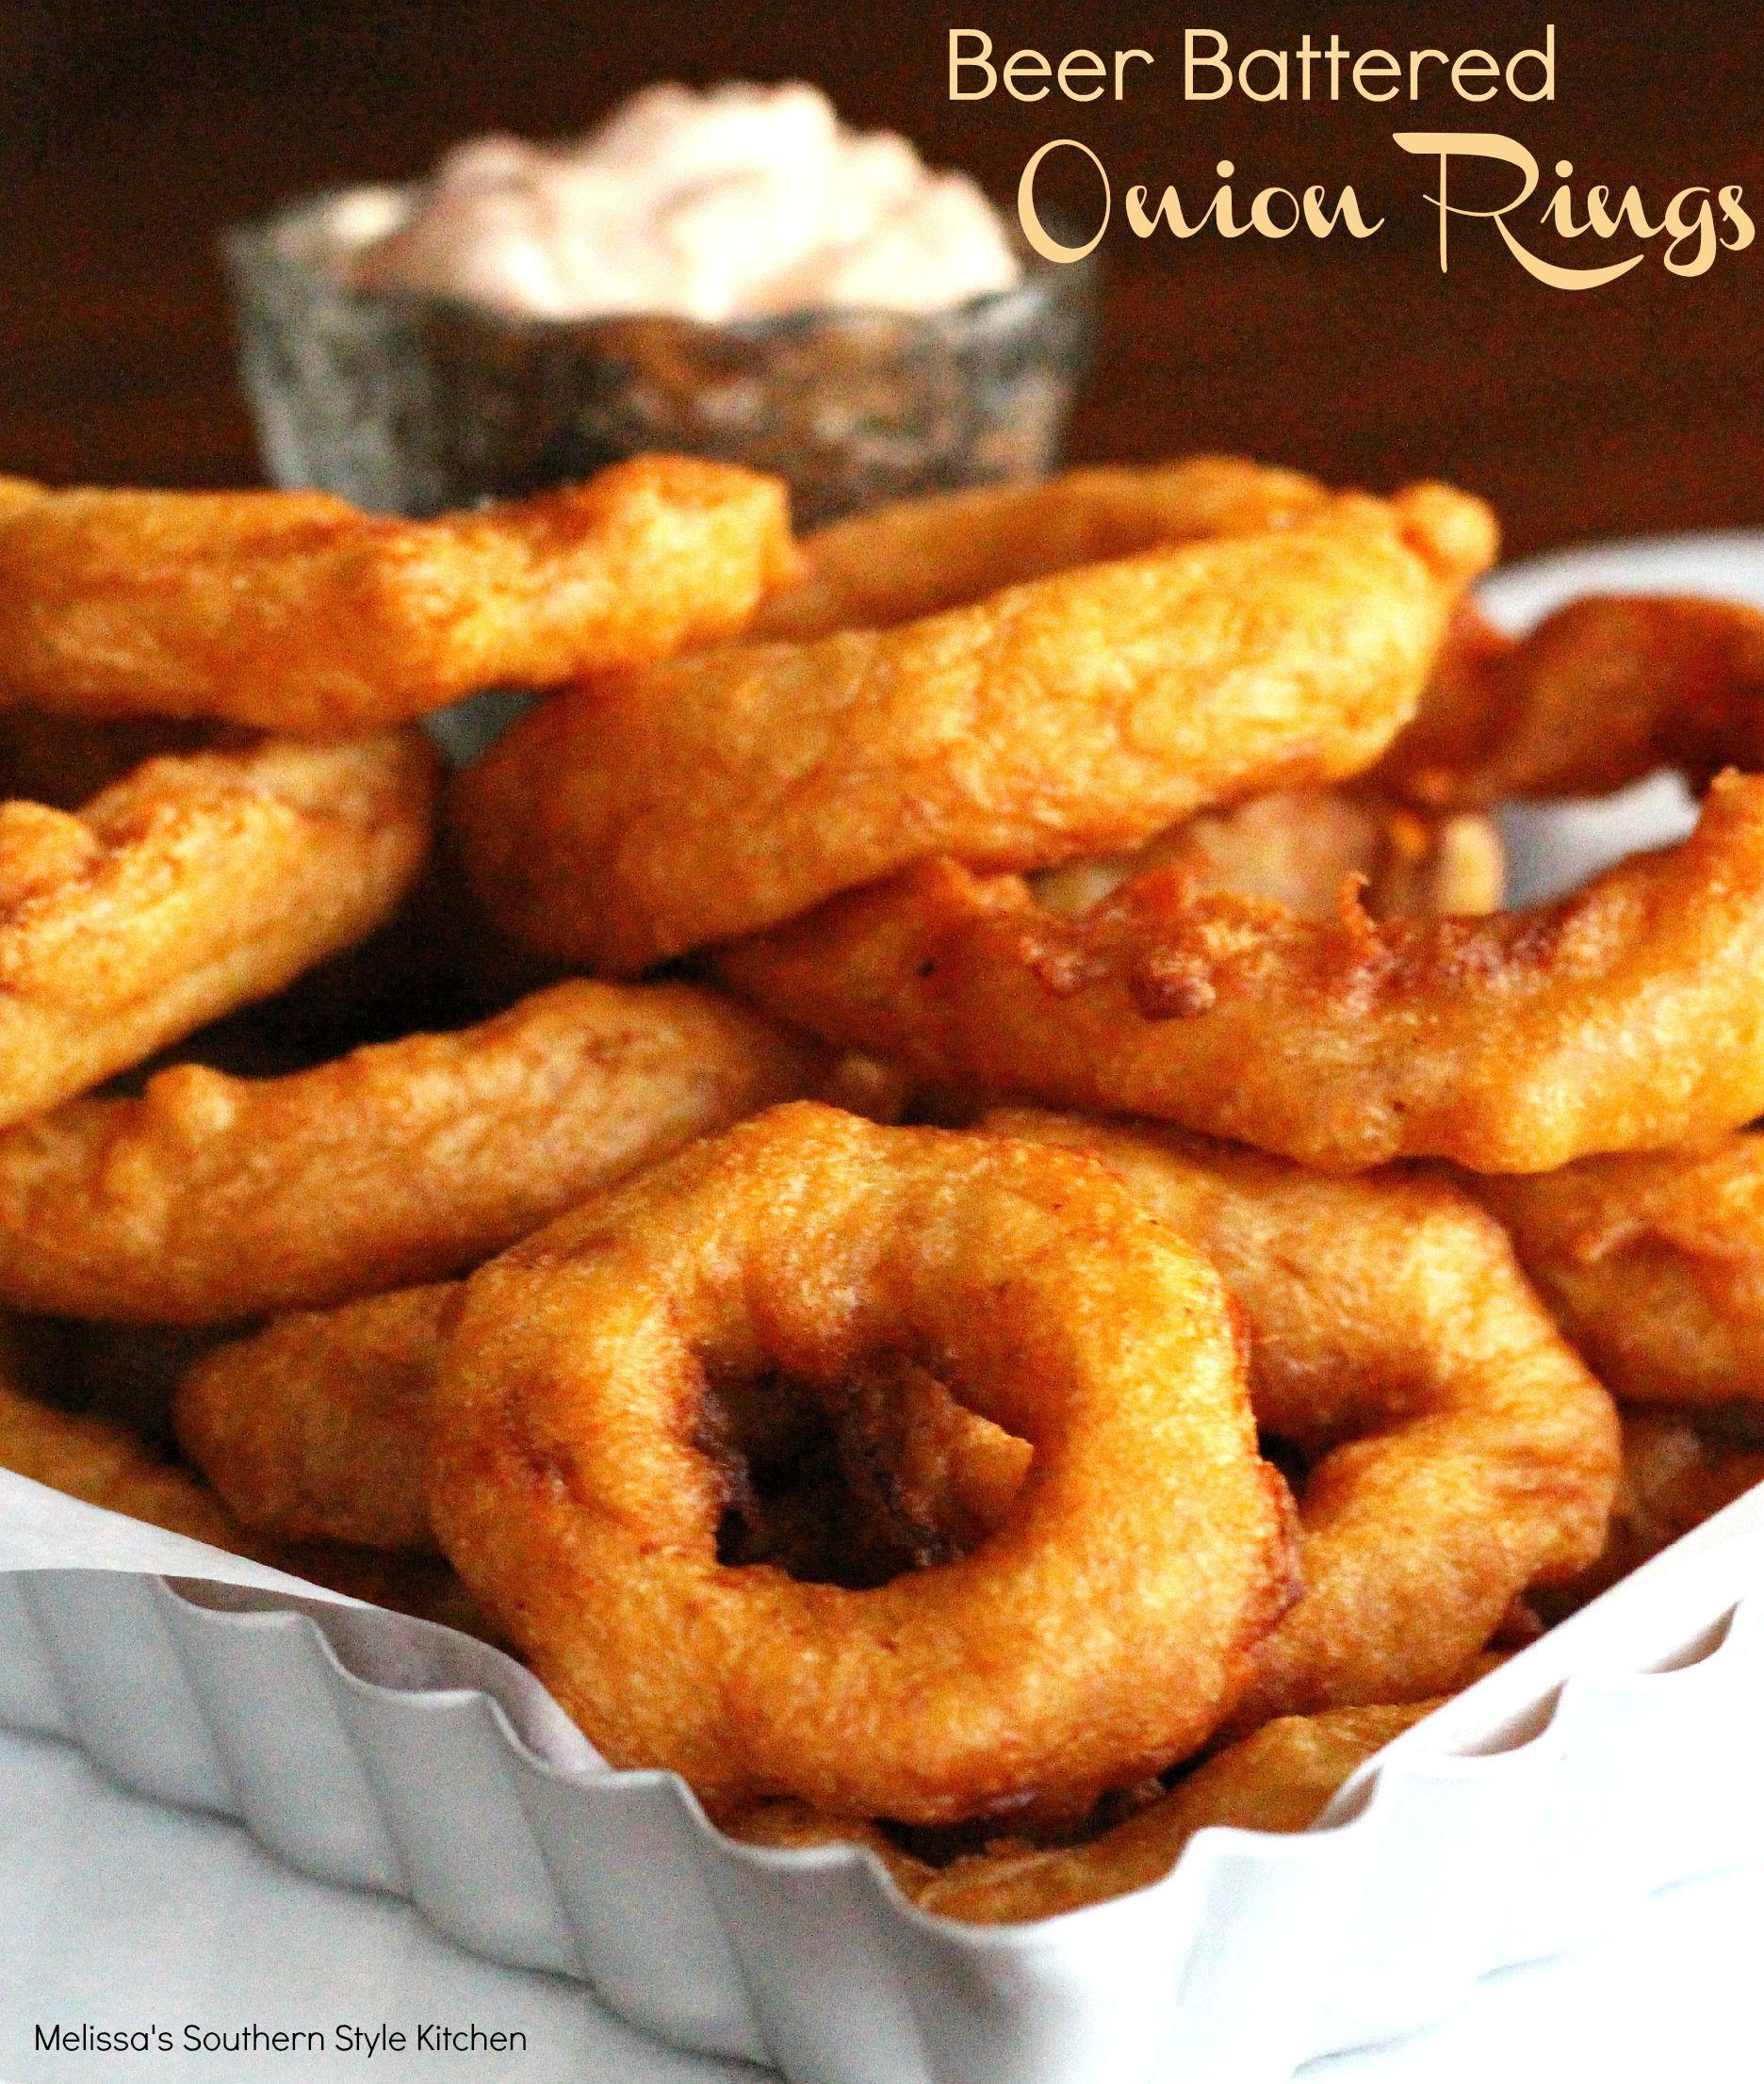 grilled day outdoor ring onion rings national kitchens img ways two fireside